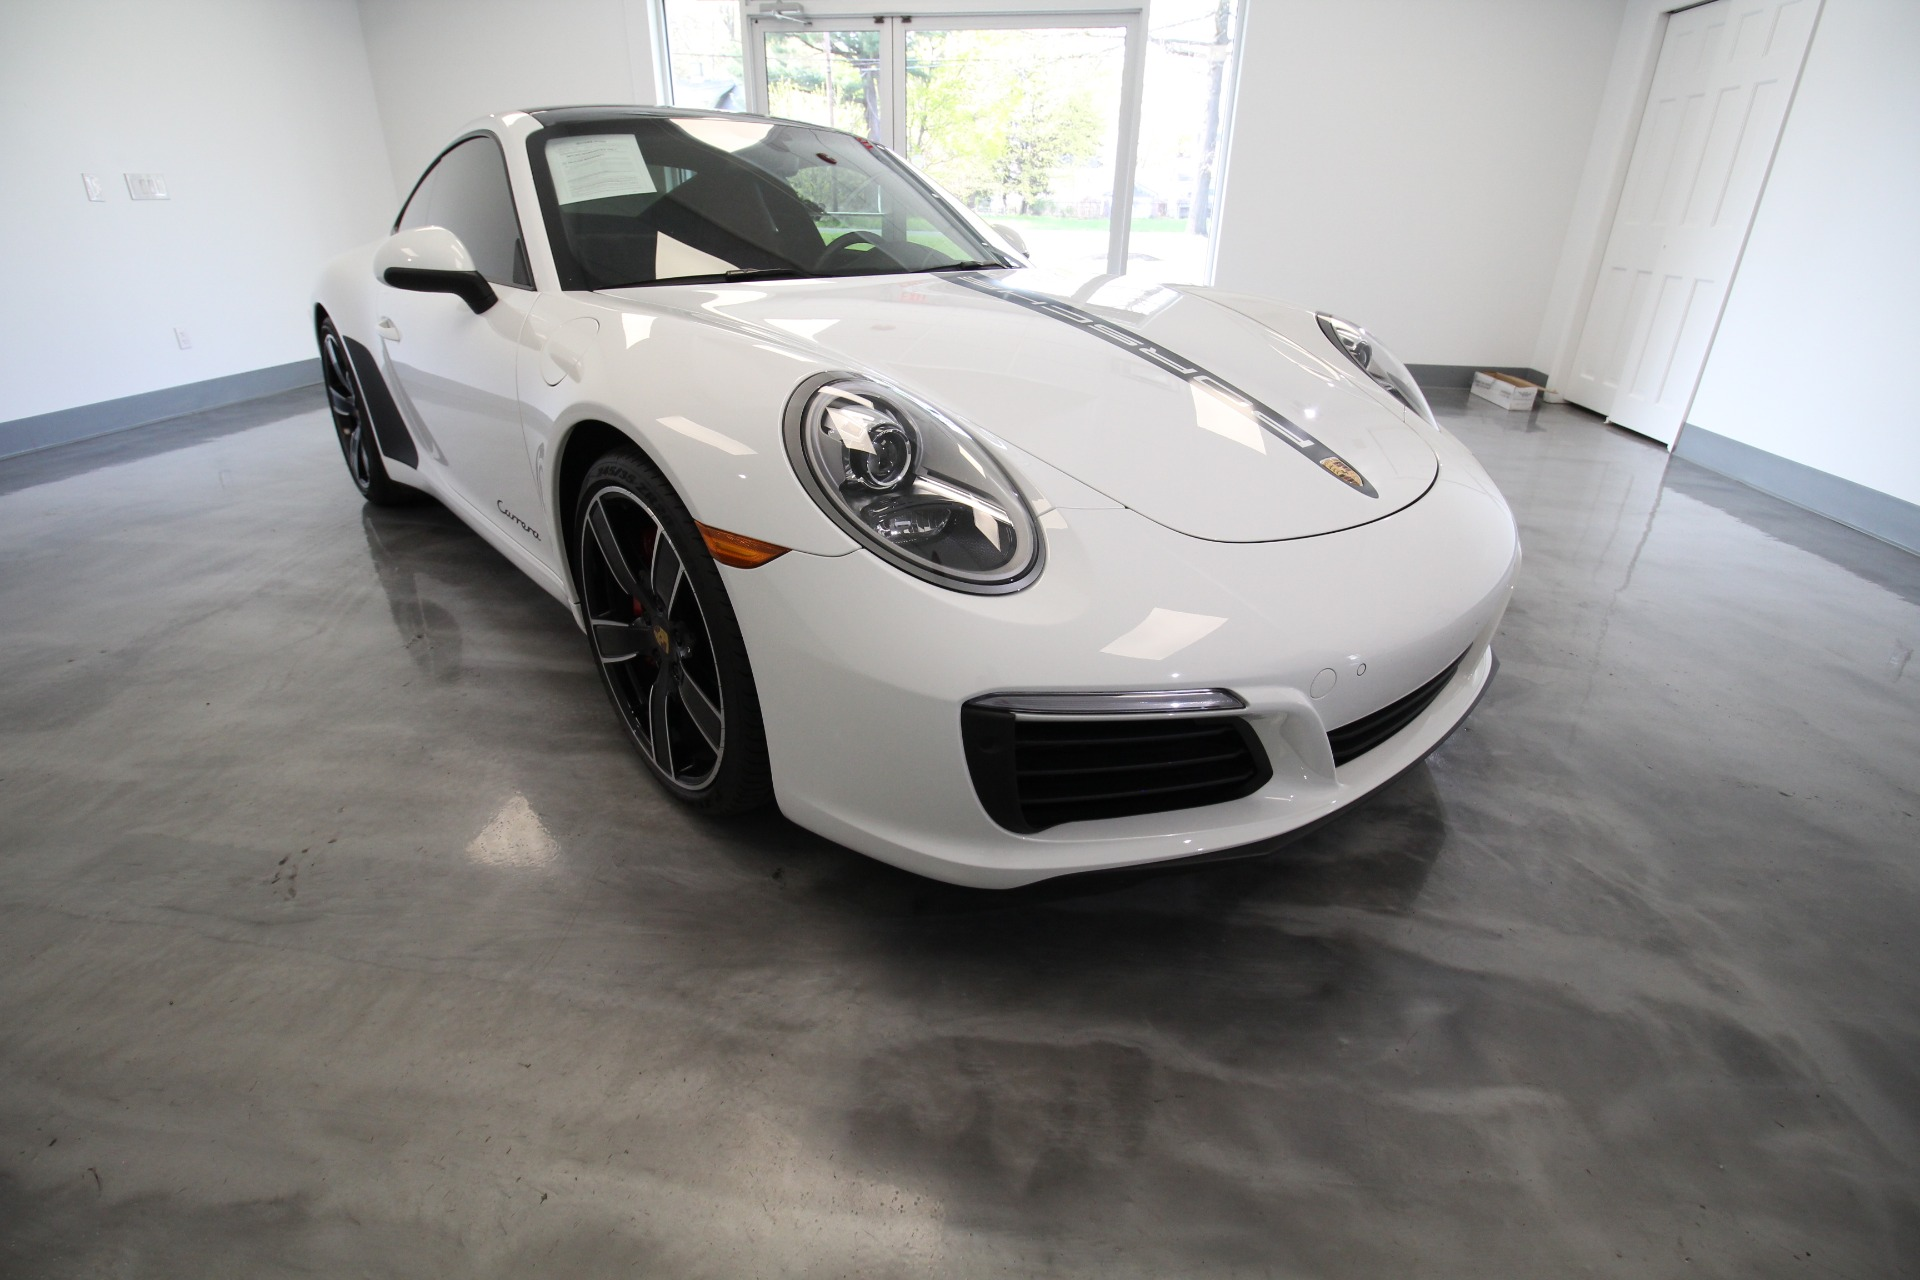 Used 2018 Porsche 911 Carrera Coupe Porsche Certified Pre-owned Warranty | Albany, NY